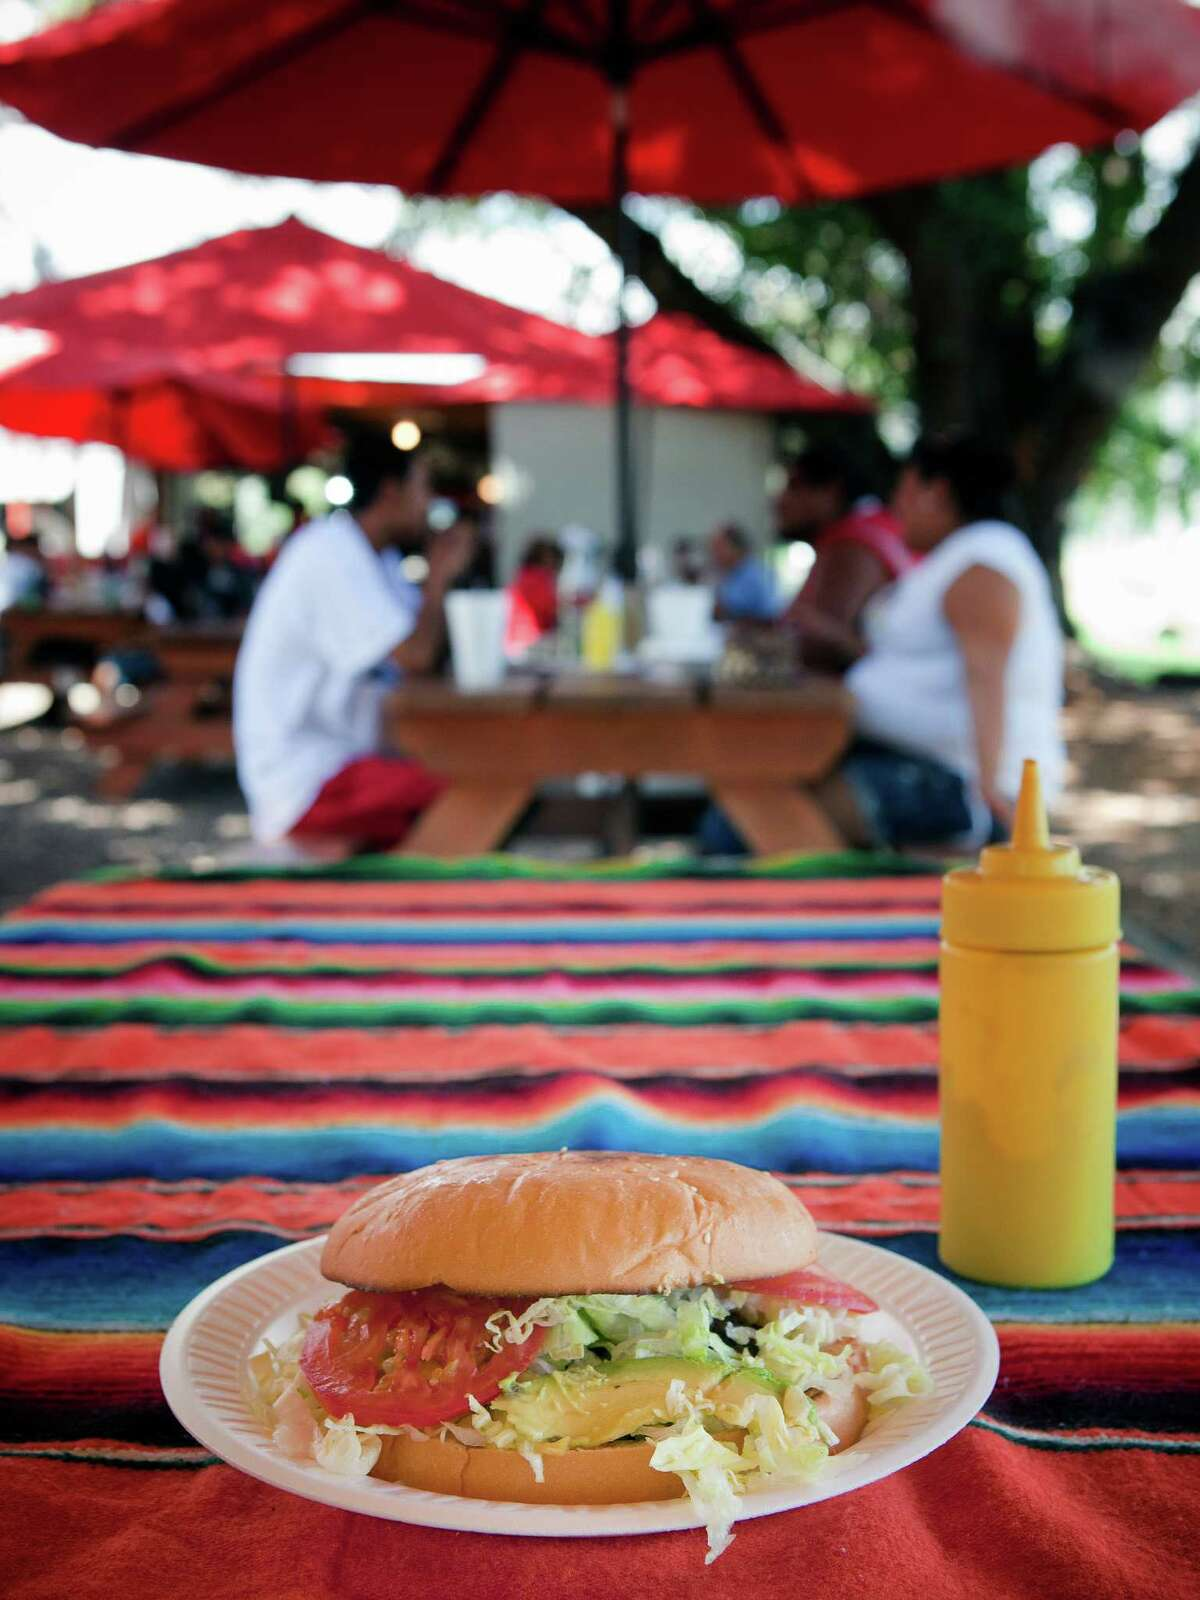 Images of Karancho's taco camp in Channelview, Texas taken on Saturday, July 30, 2011. (Todd Spoth for the Chronicle)